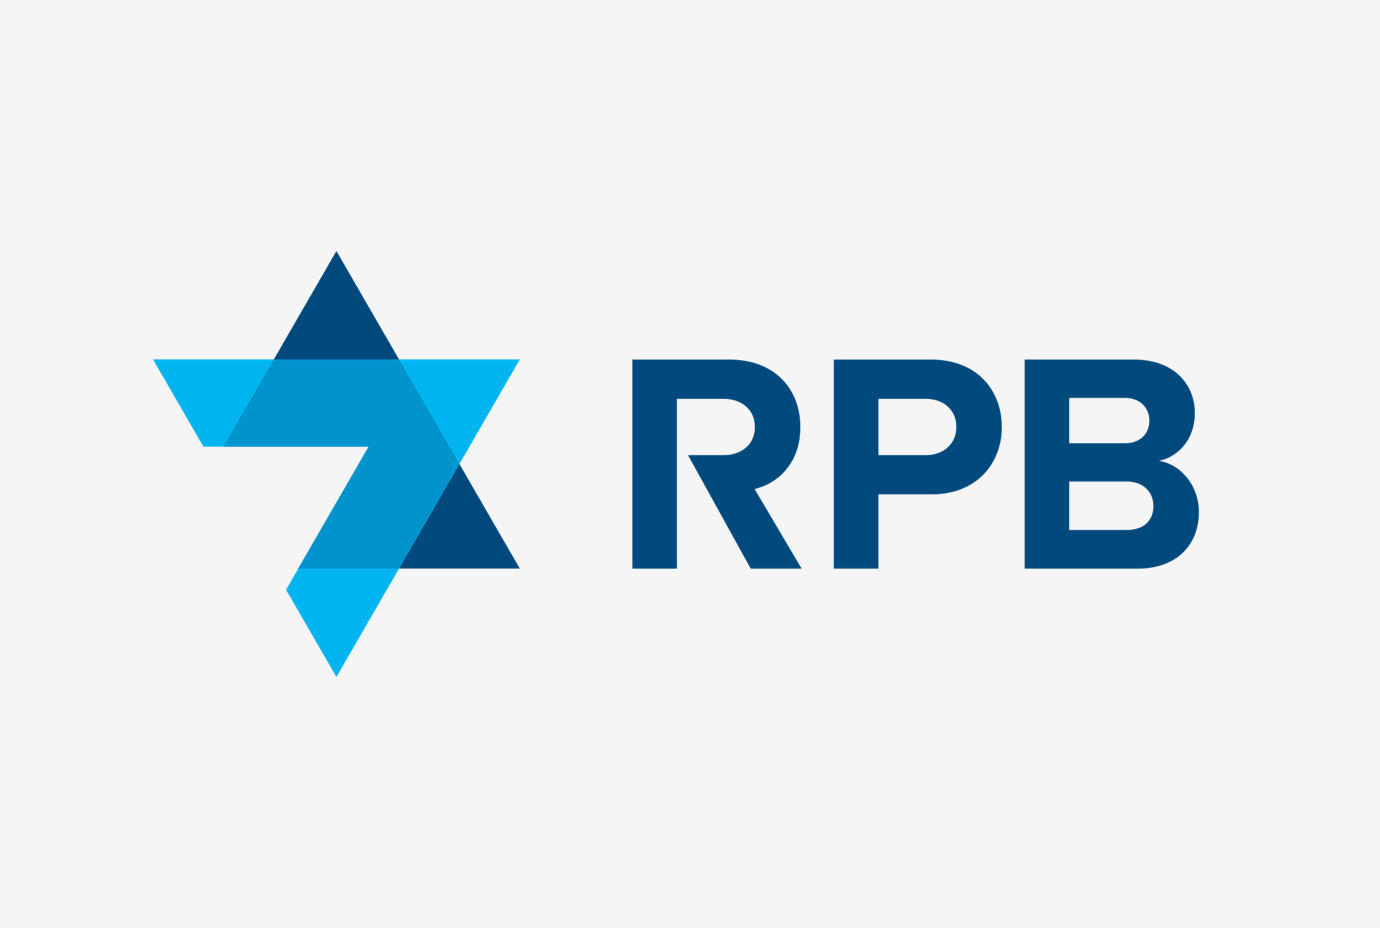 The star-like symbol and logotype for RPB.